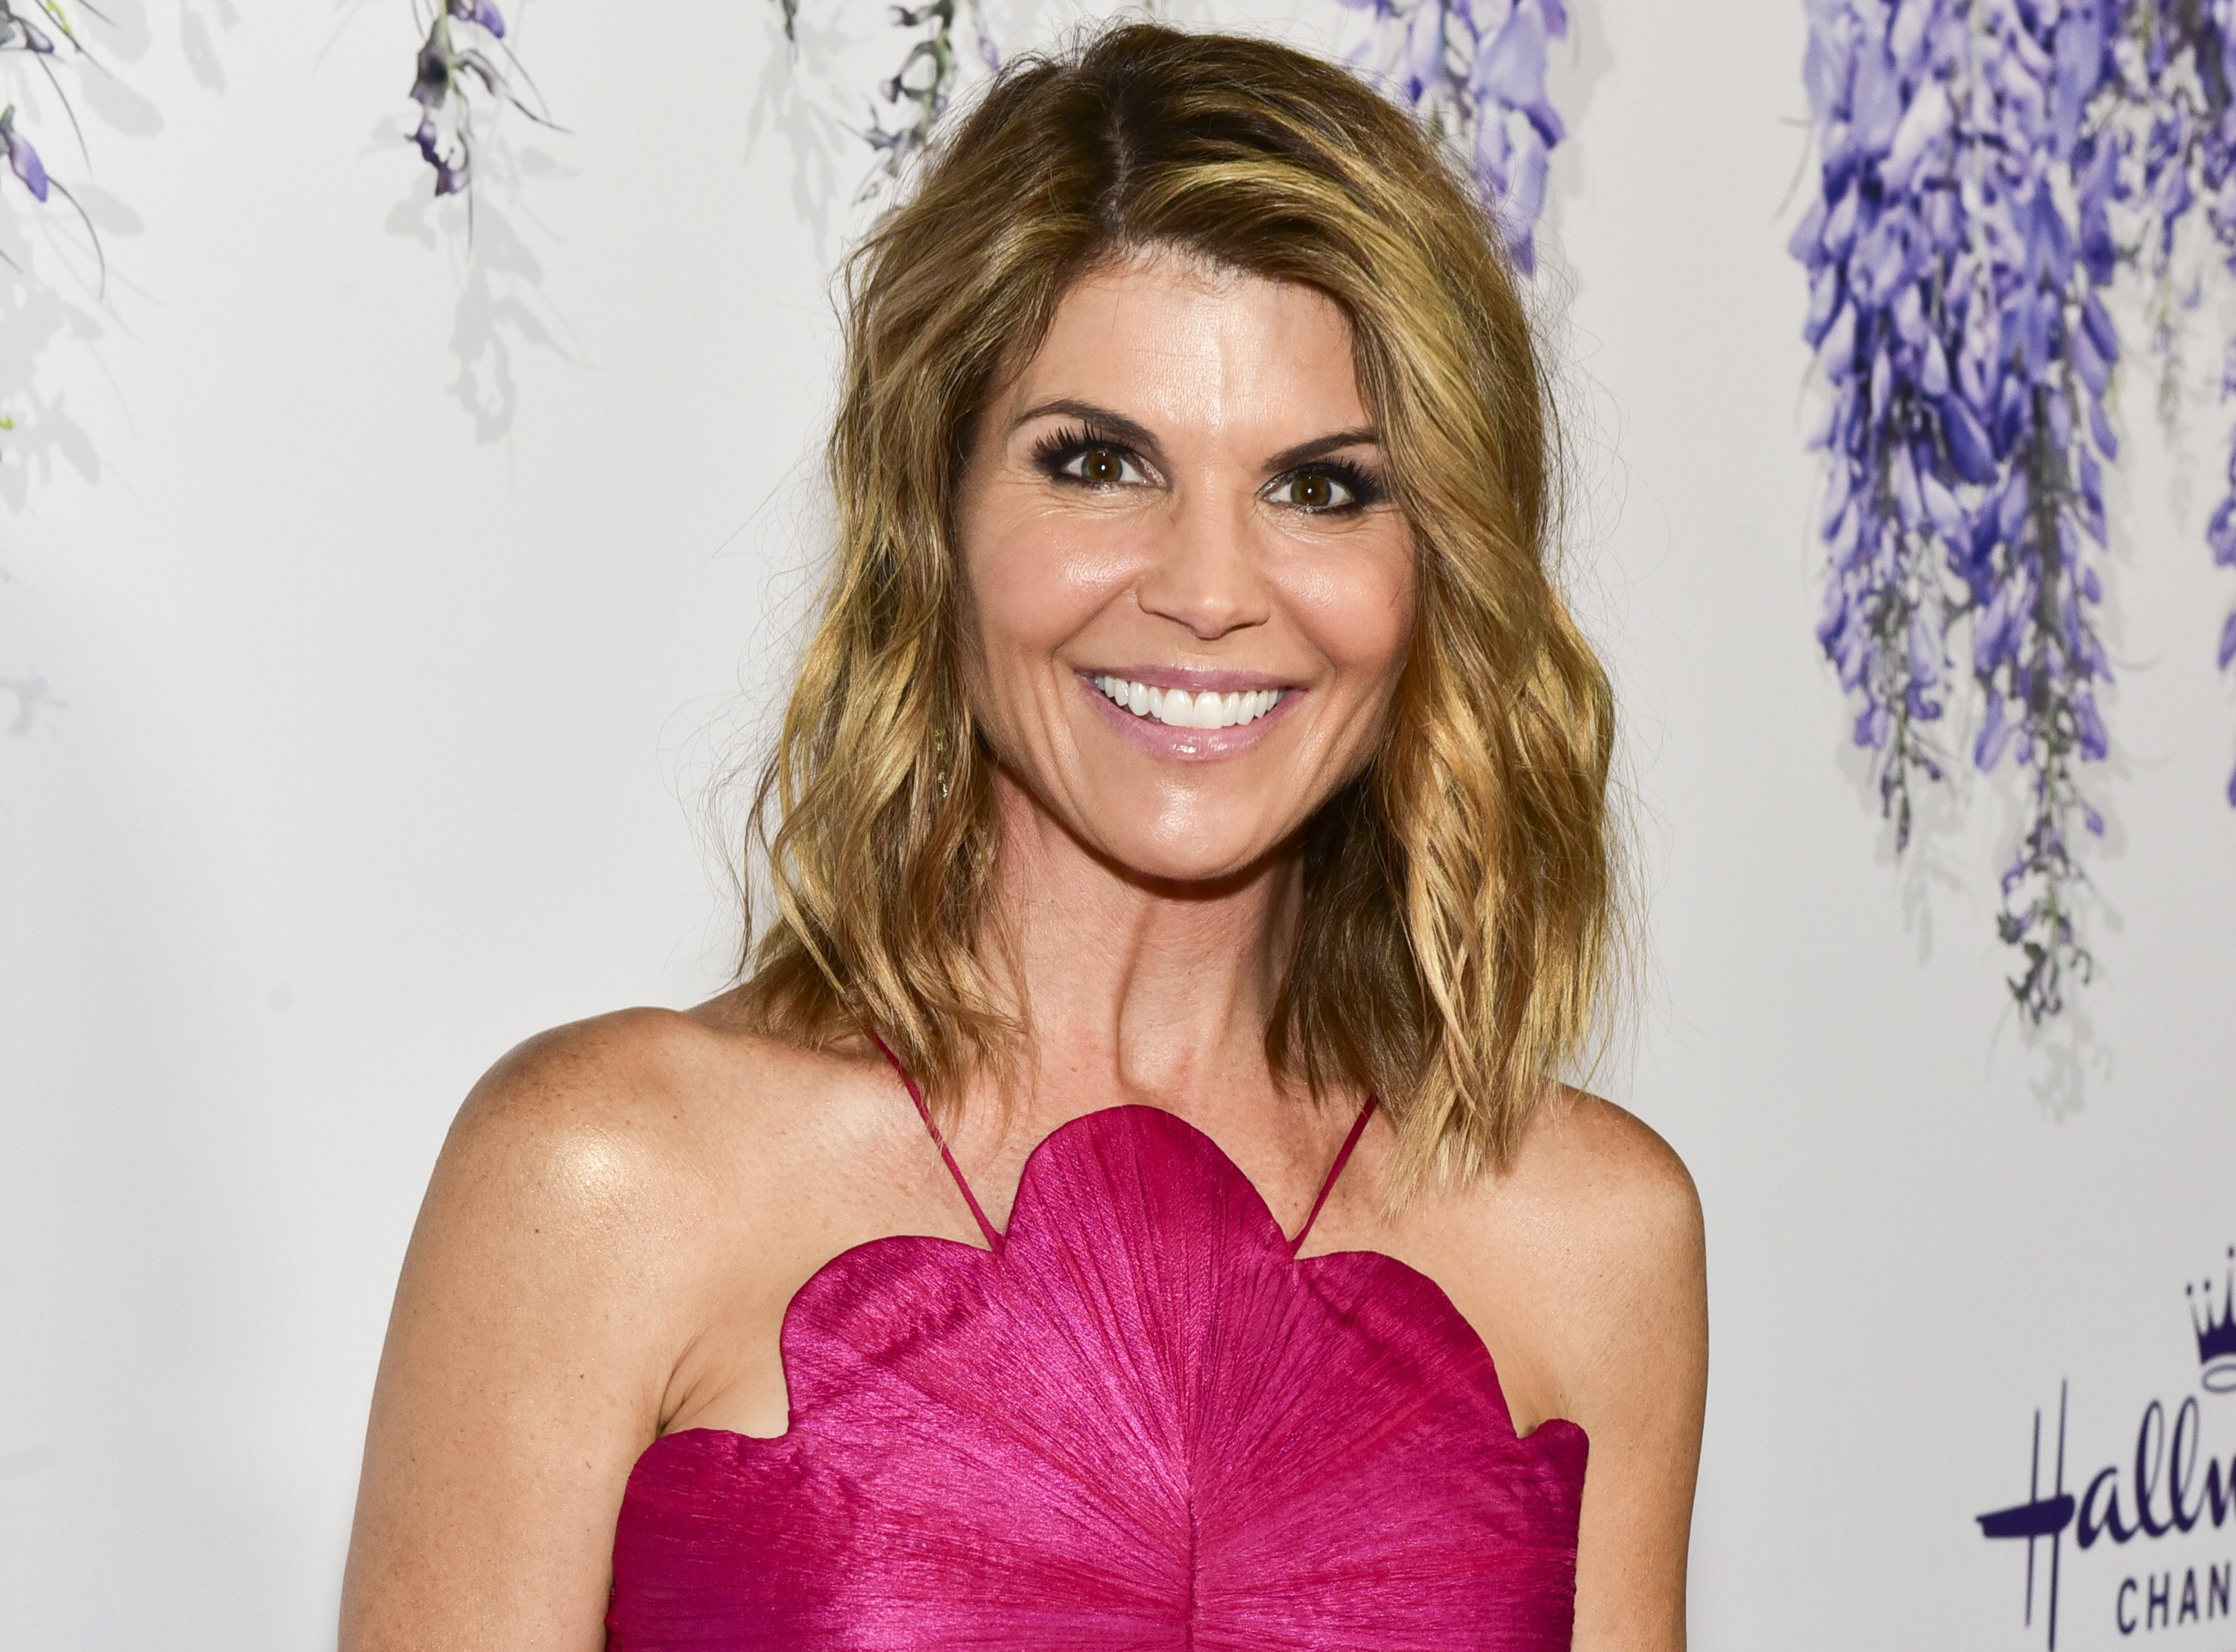 Lori Loughlin at the 2018 Hallmark Channel Summer TCA | Photo: Getty Images